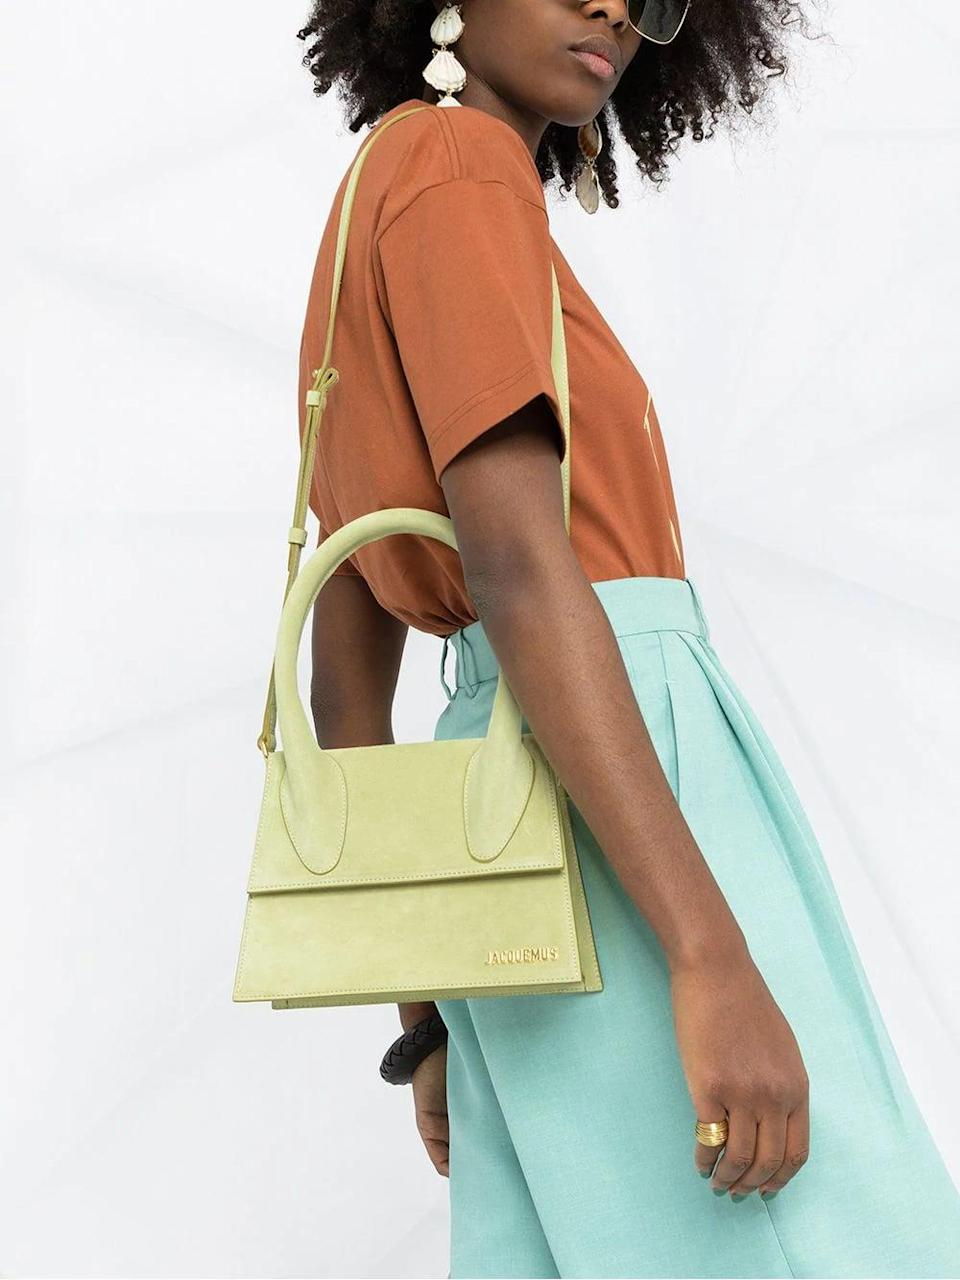 <p>This summer, everyone will be lusting after this <span>Jacquemus Le Grand Chiquito Tote Bag</span> ($993), so snap it up before it inevitably sells out.</p>